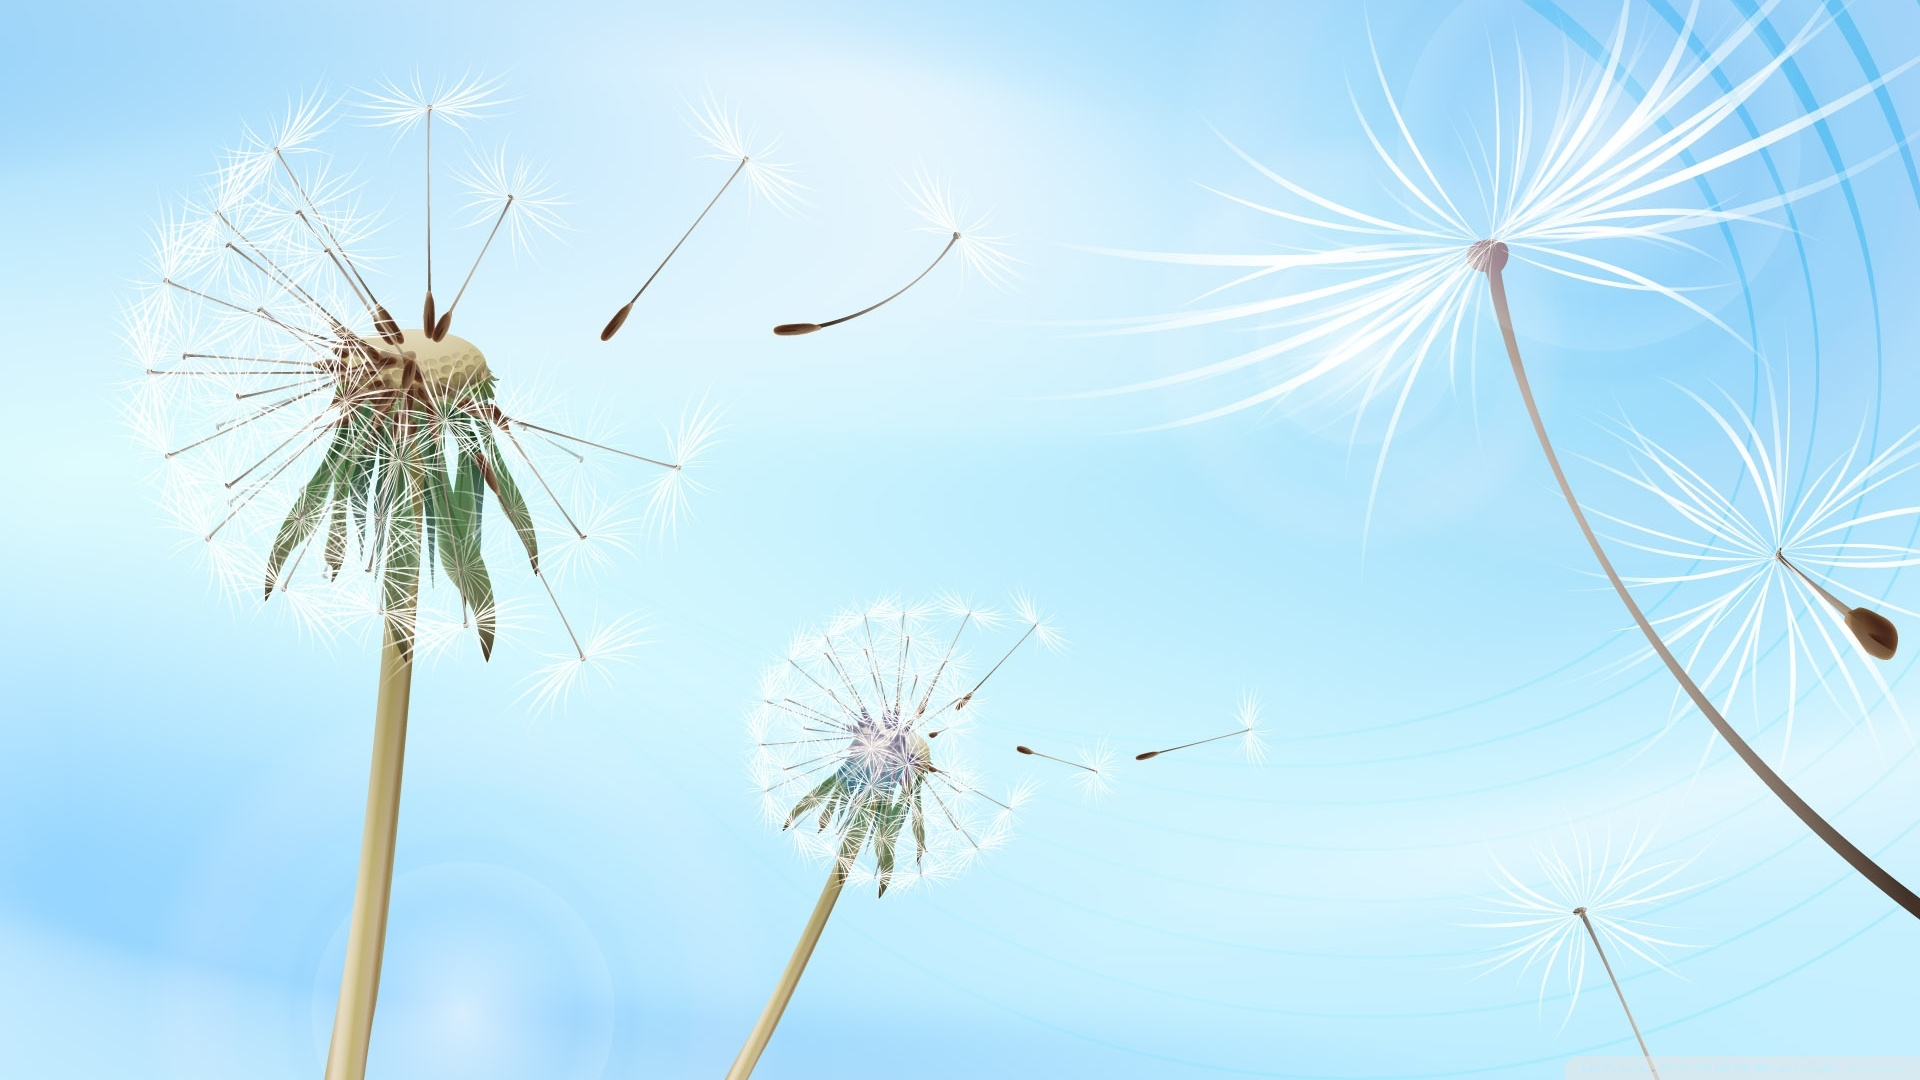 Blowing Dandelions Wallpaper 1920x1080 Blowing Dandelions 1920x1080